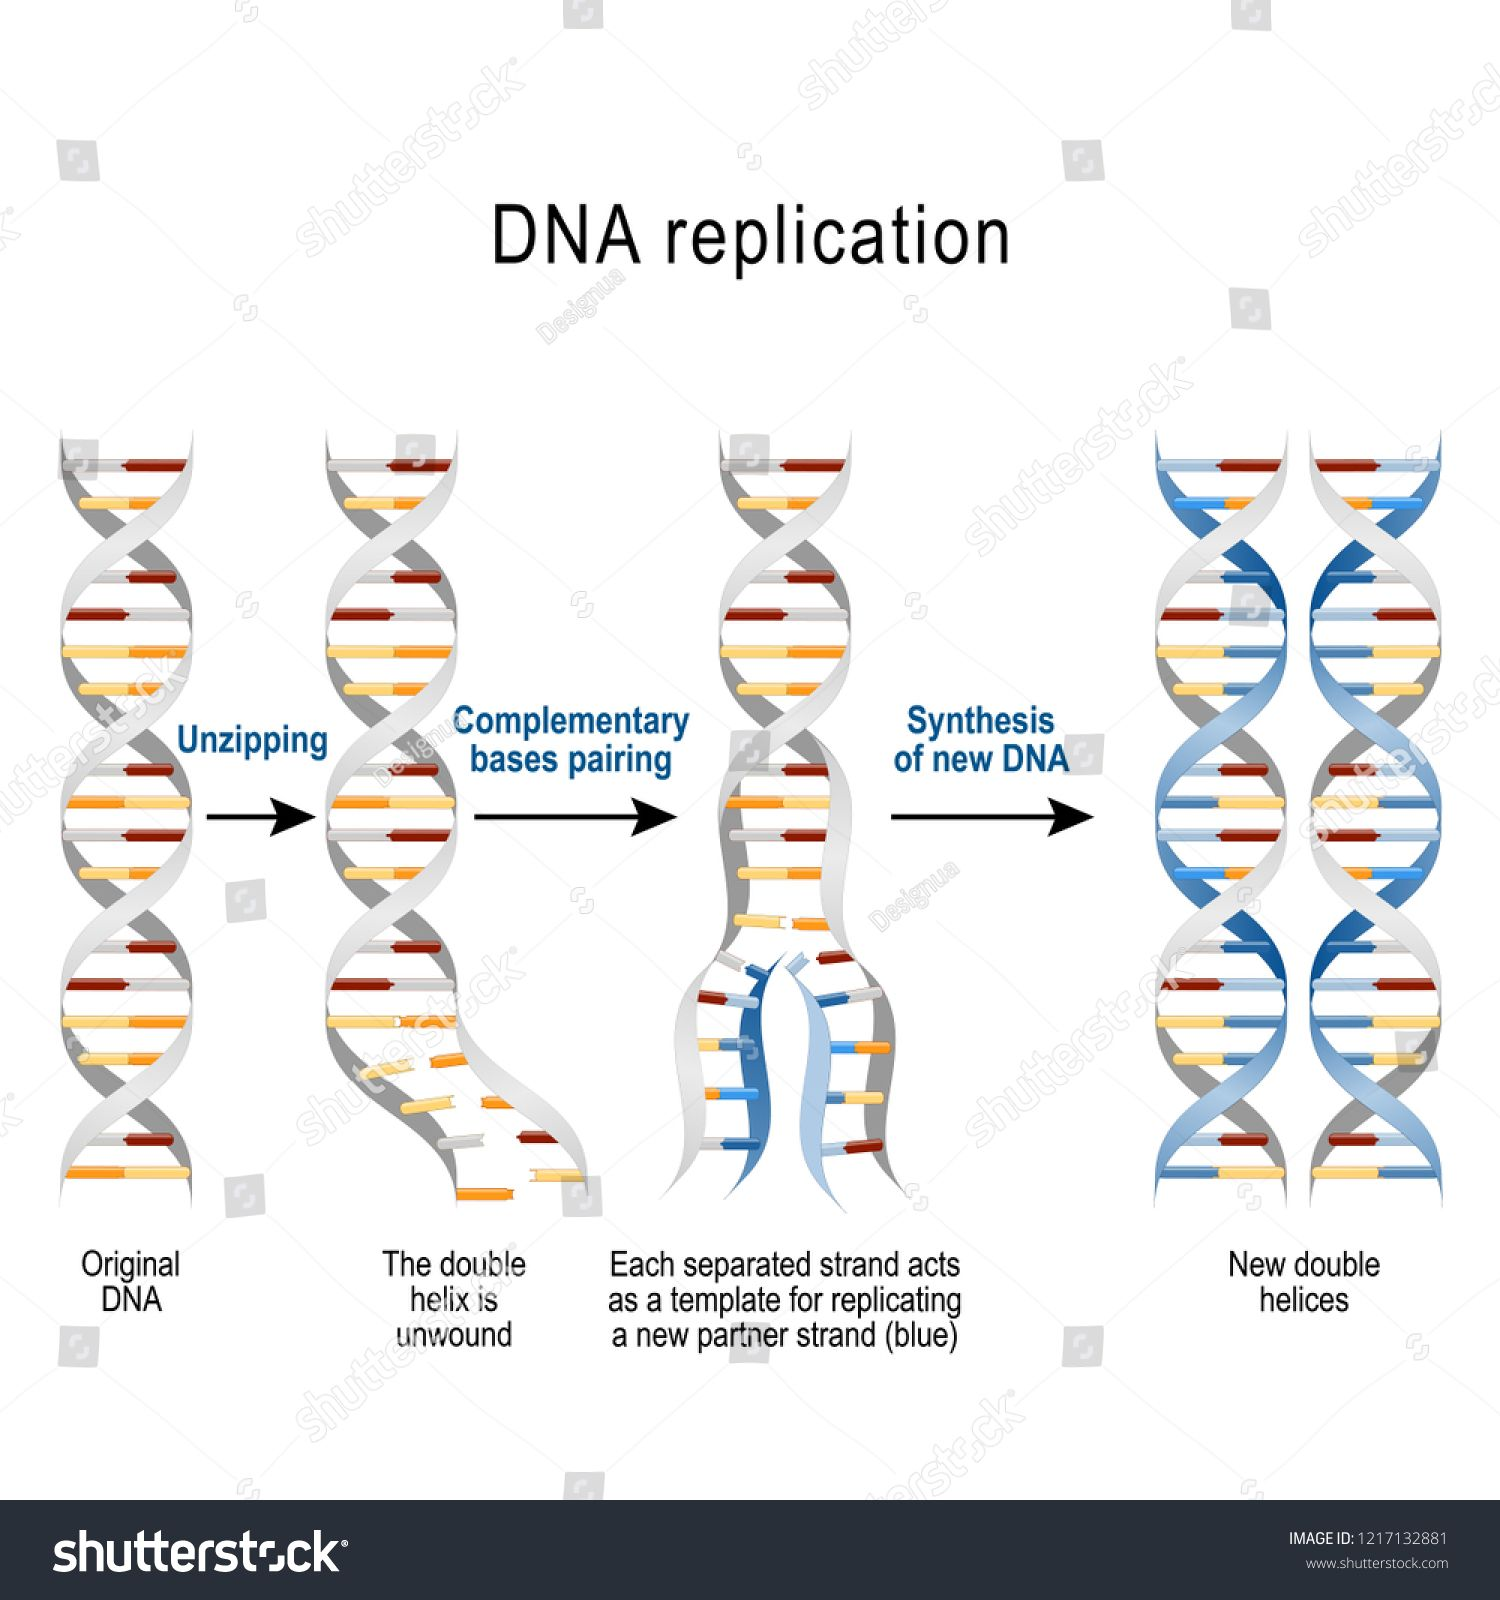 DNA replication. Steps. double helix is unwound. Each